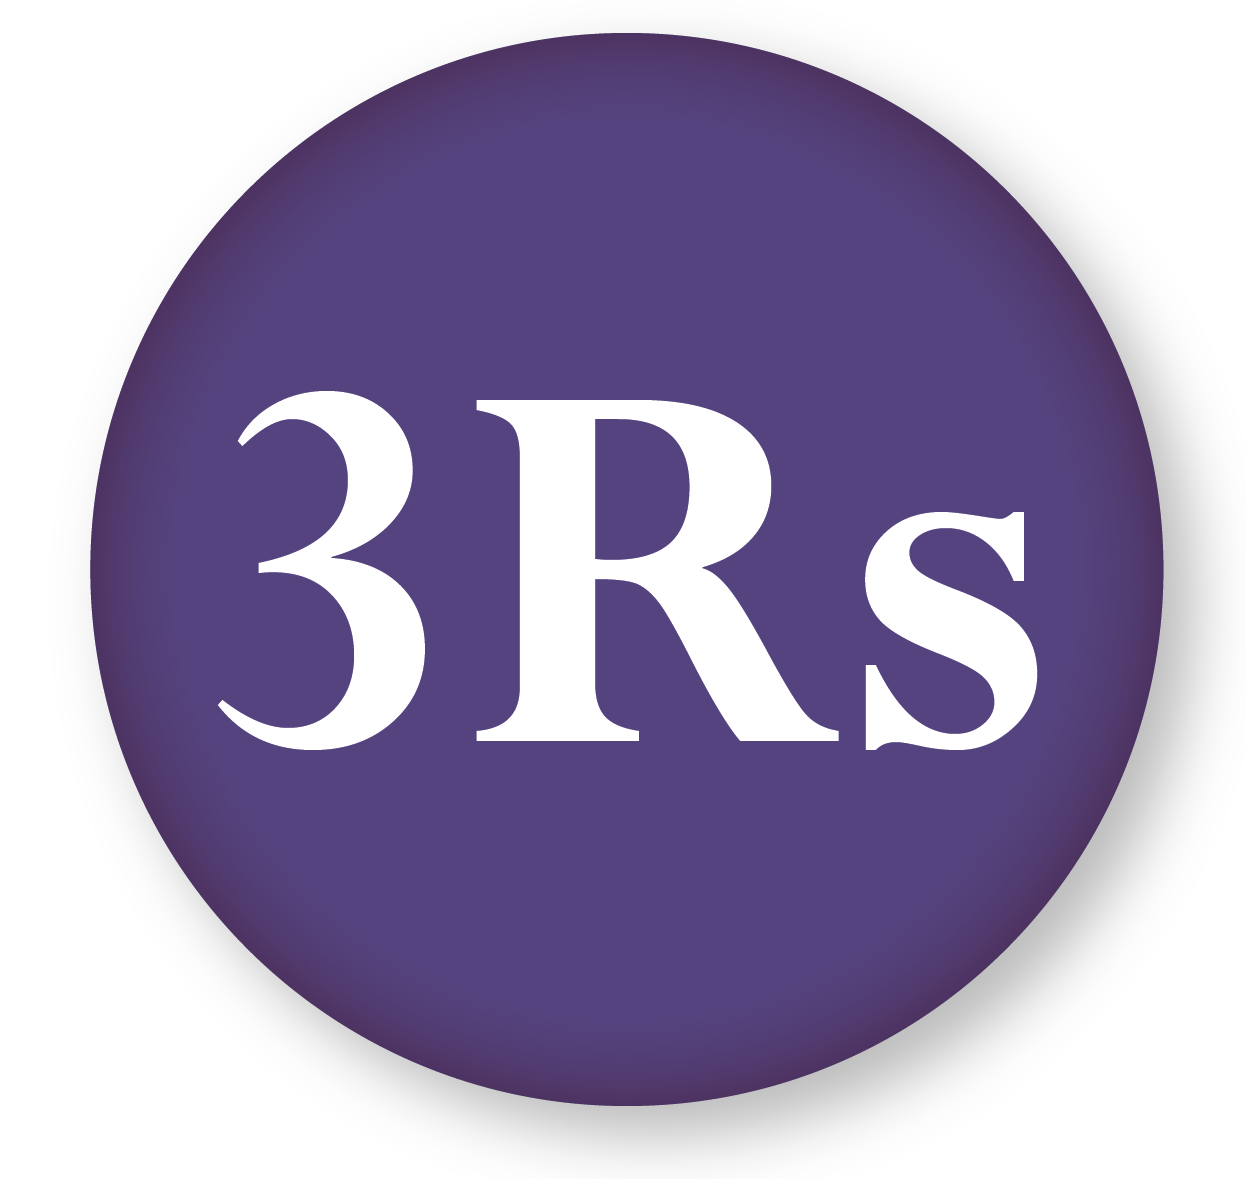 Three Rs of biomedical research icon